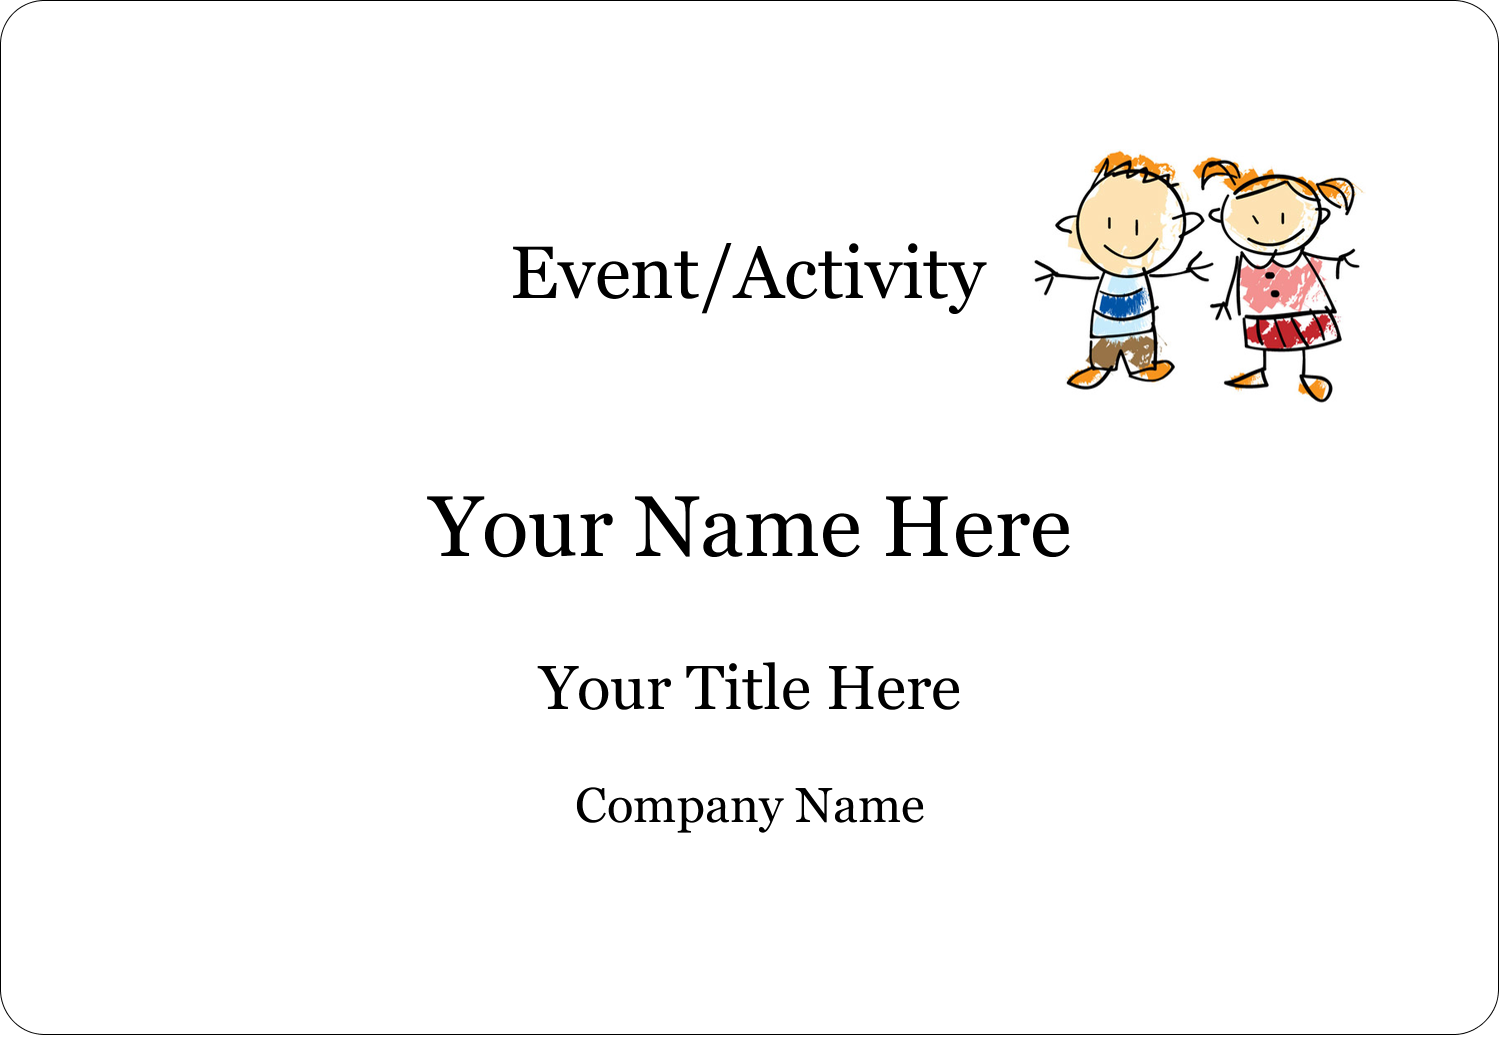 Bring childlike sweetness to custom projects with pre-designed Child Education templates.